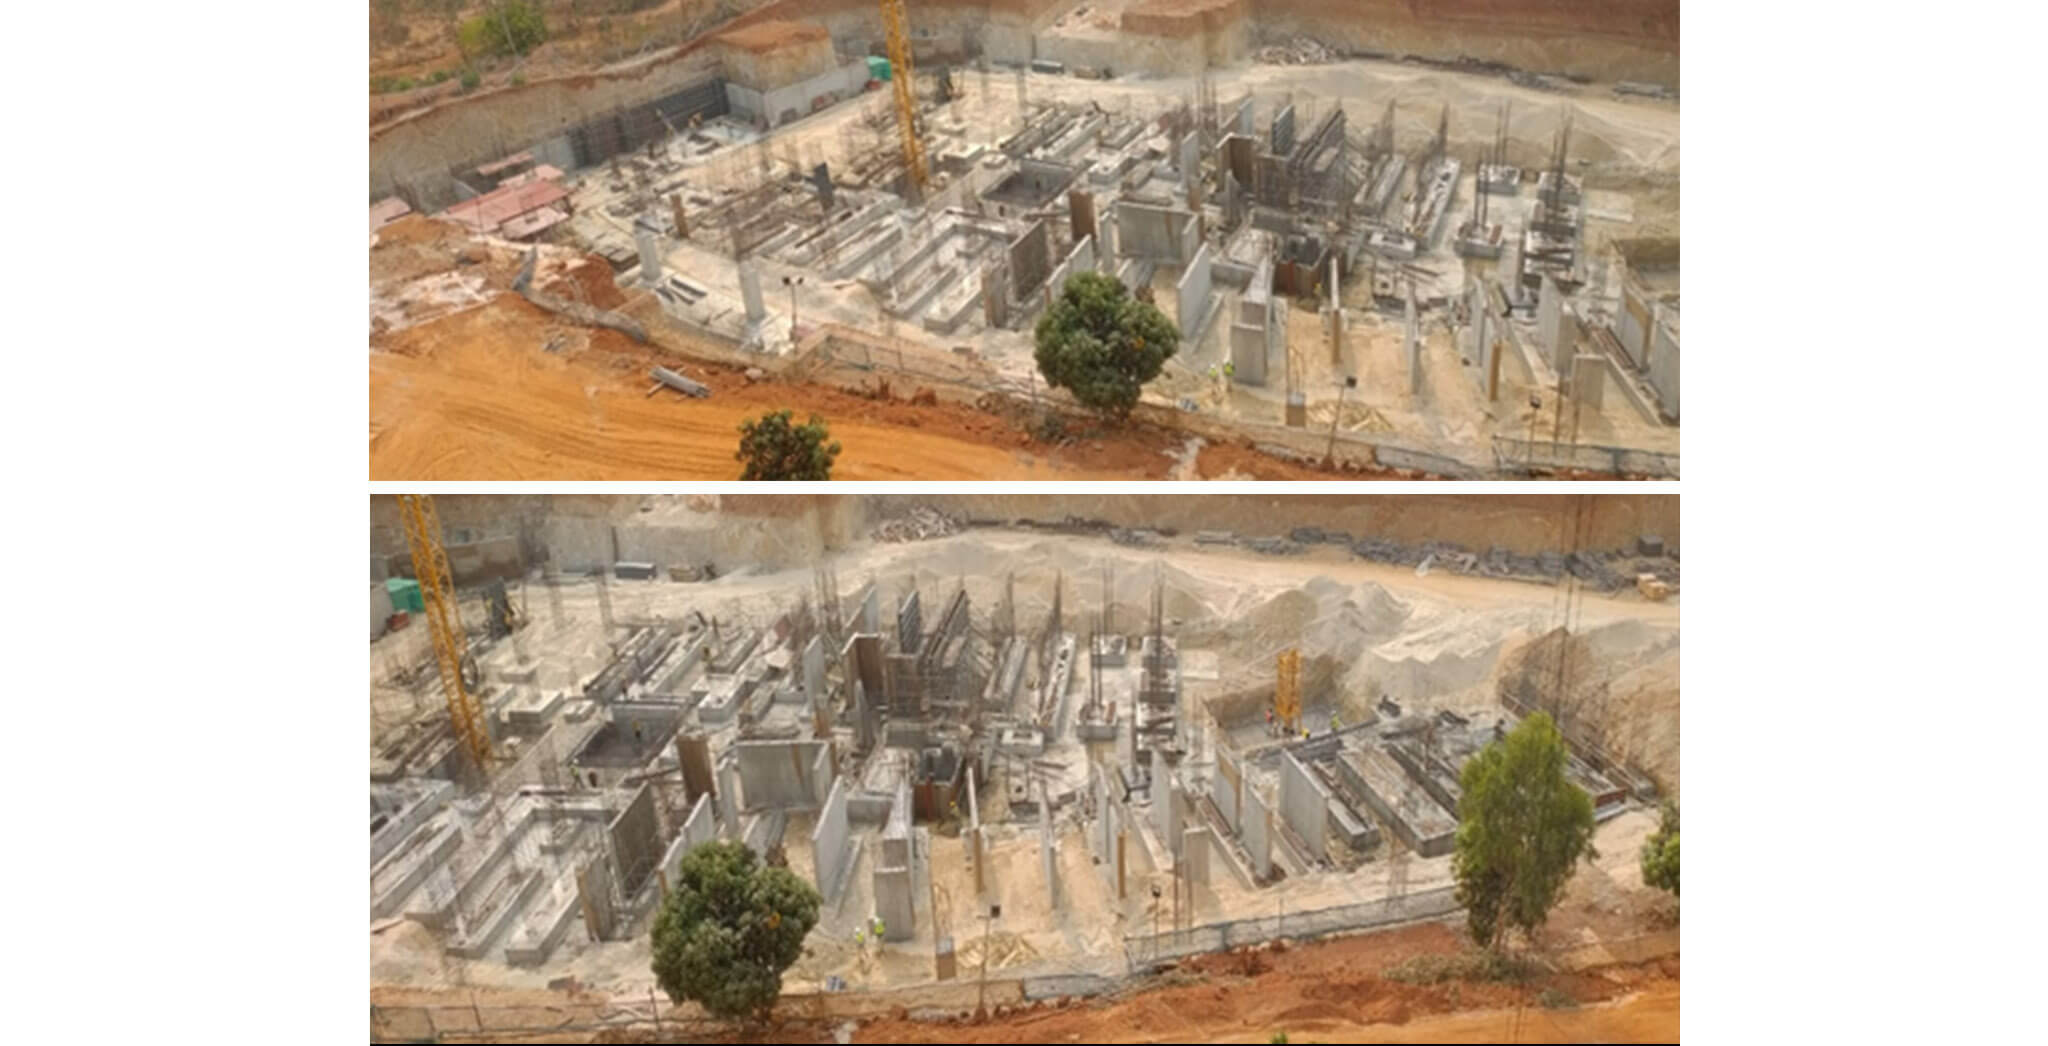 Mar 2020 - Halcyon: Foundation work of Tower I and J in progress